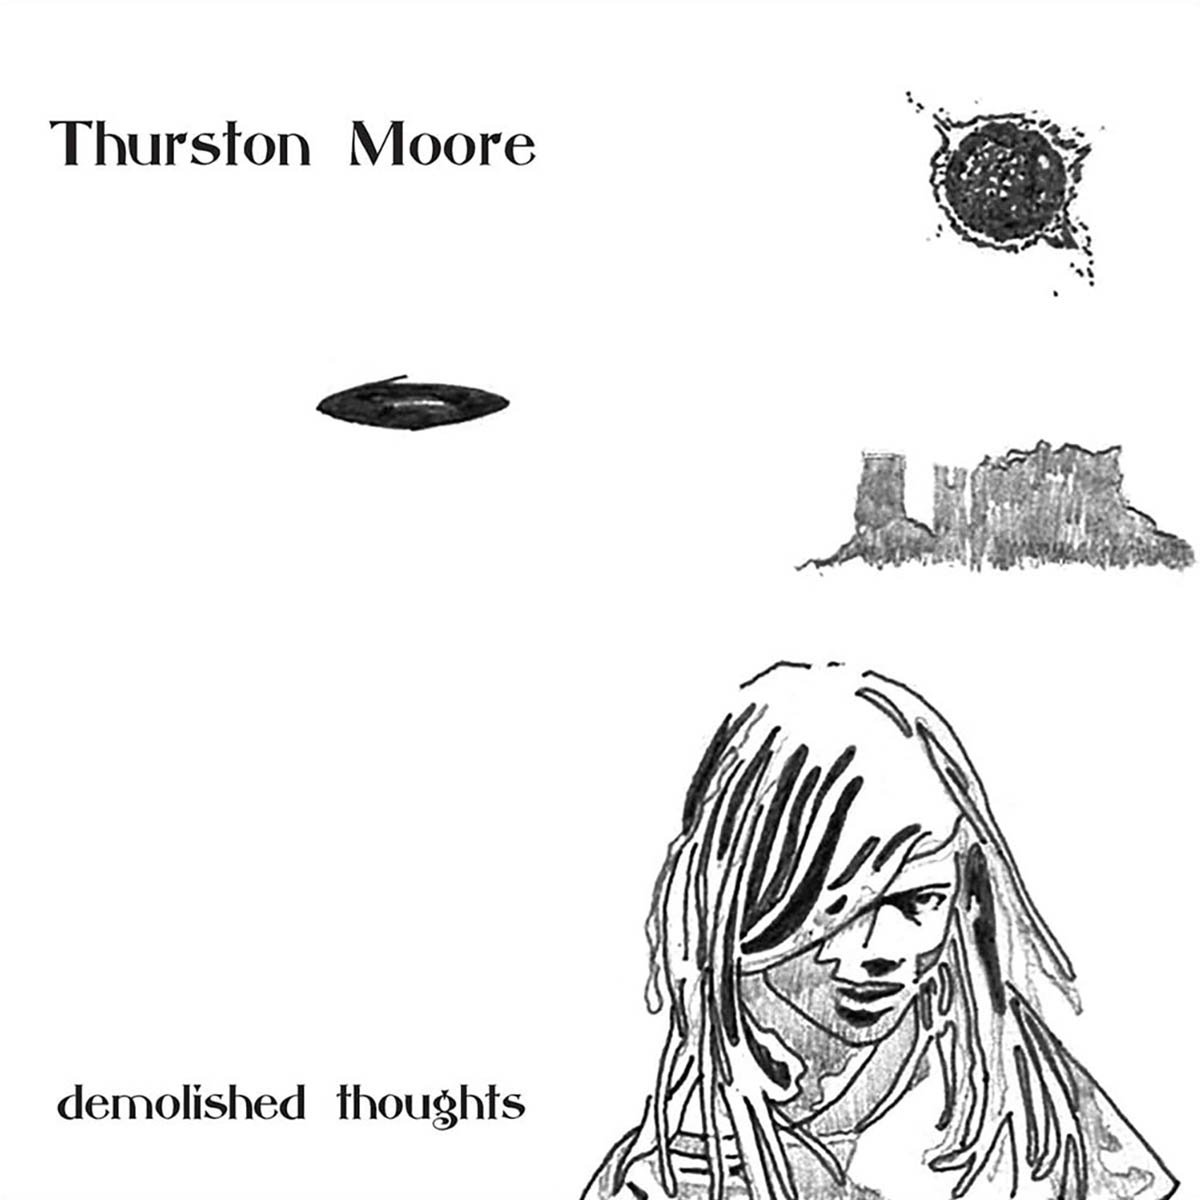 Thurston Moore, Demolished Thoughts